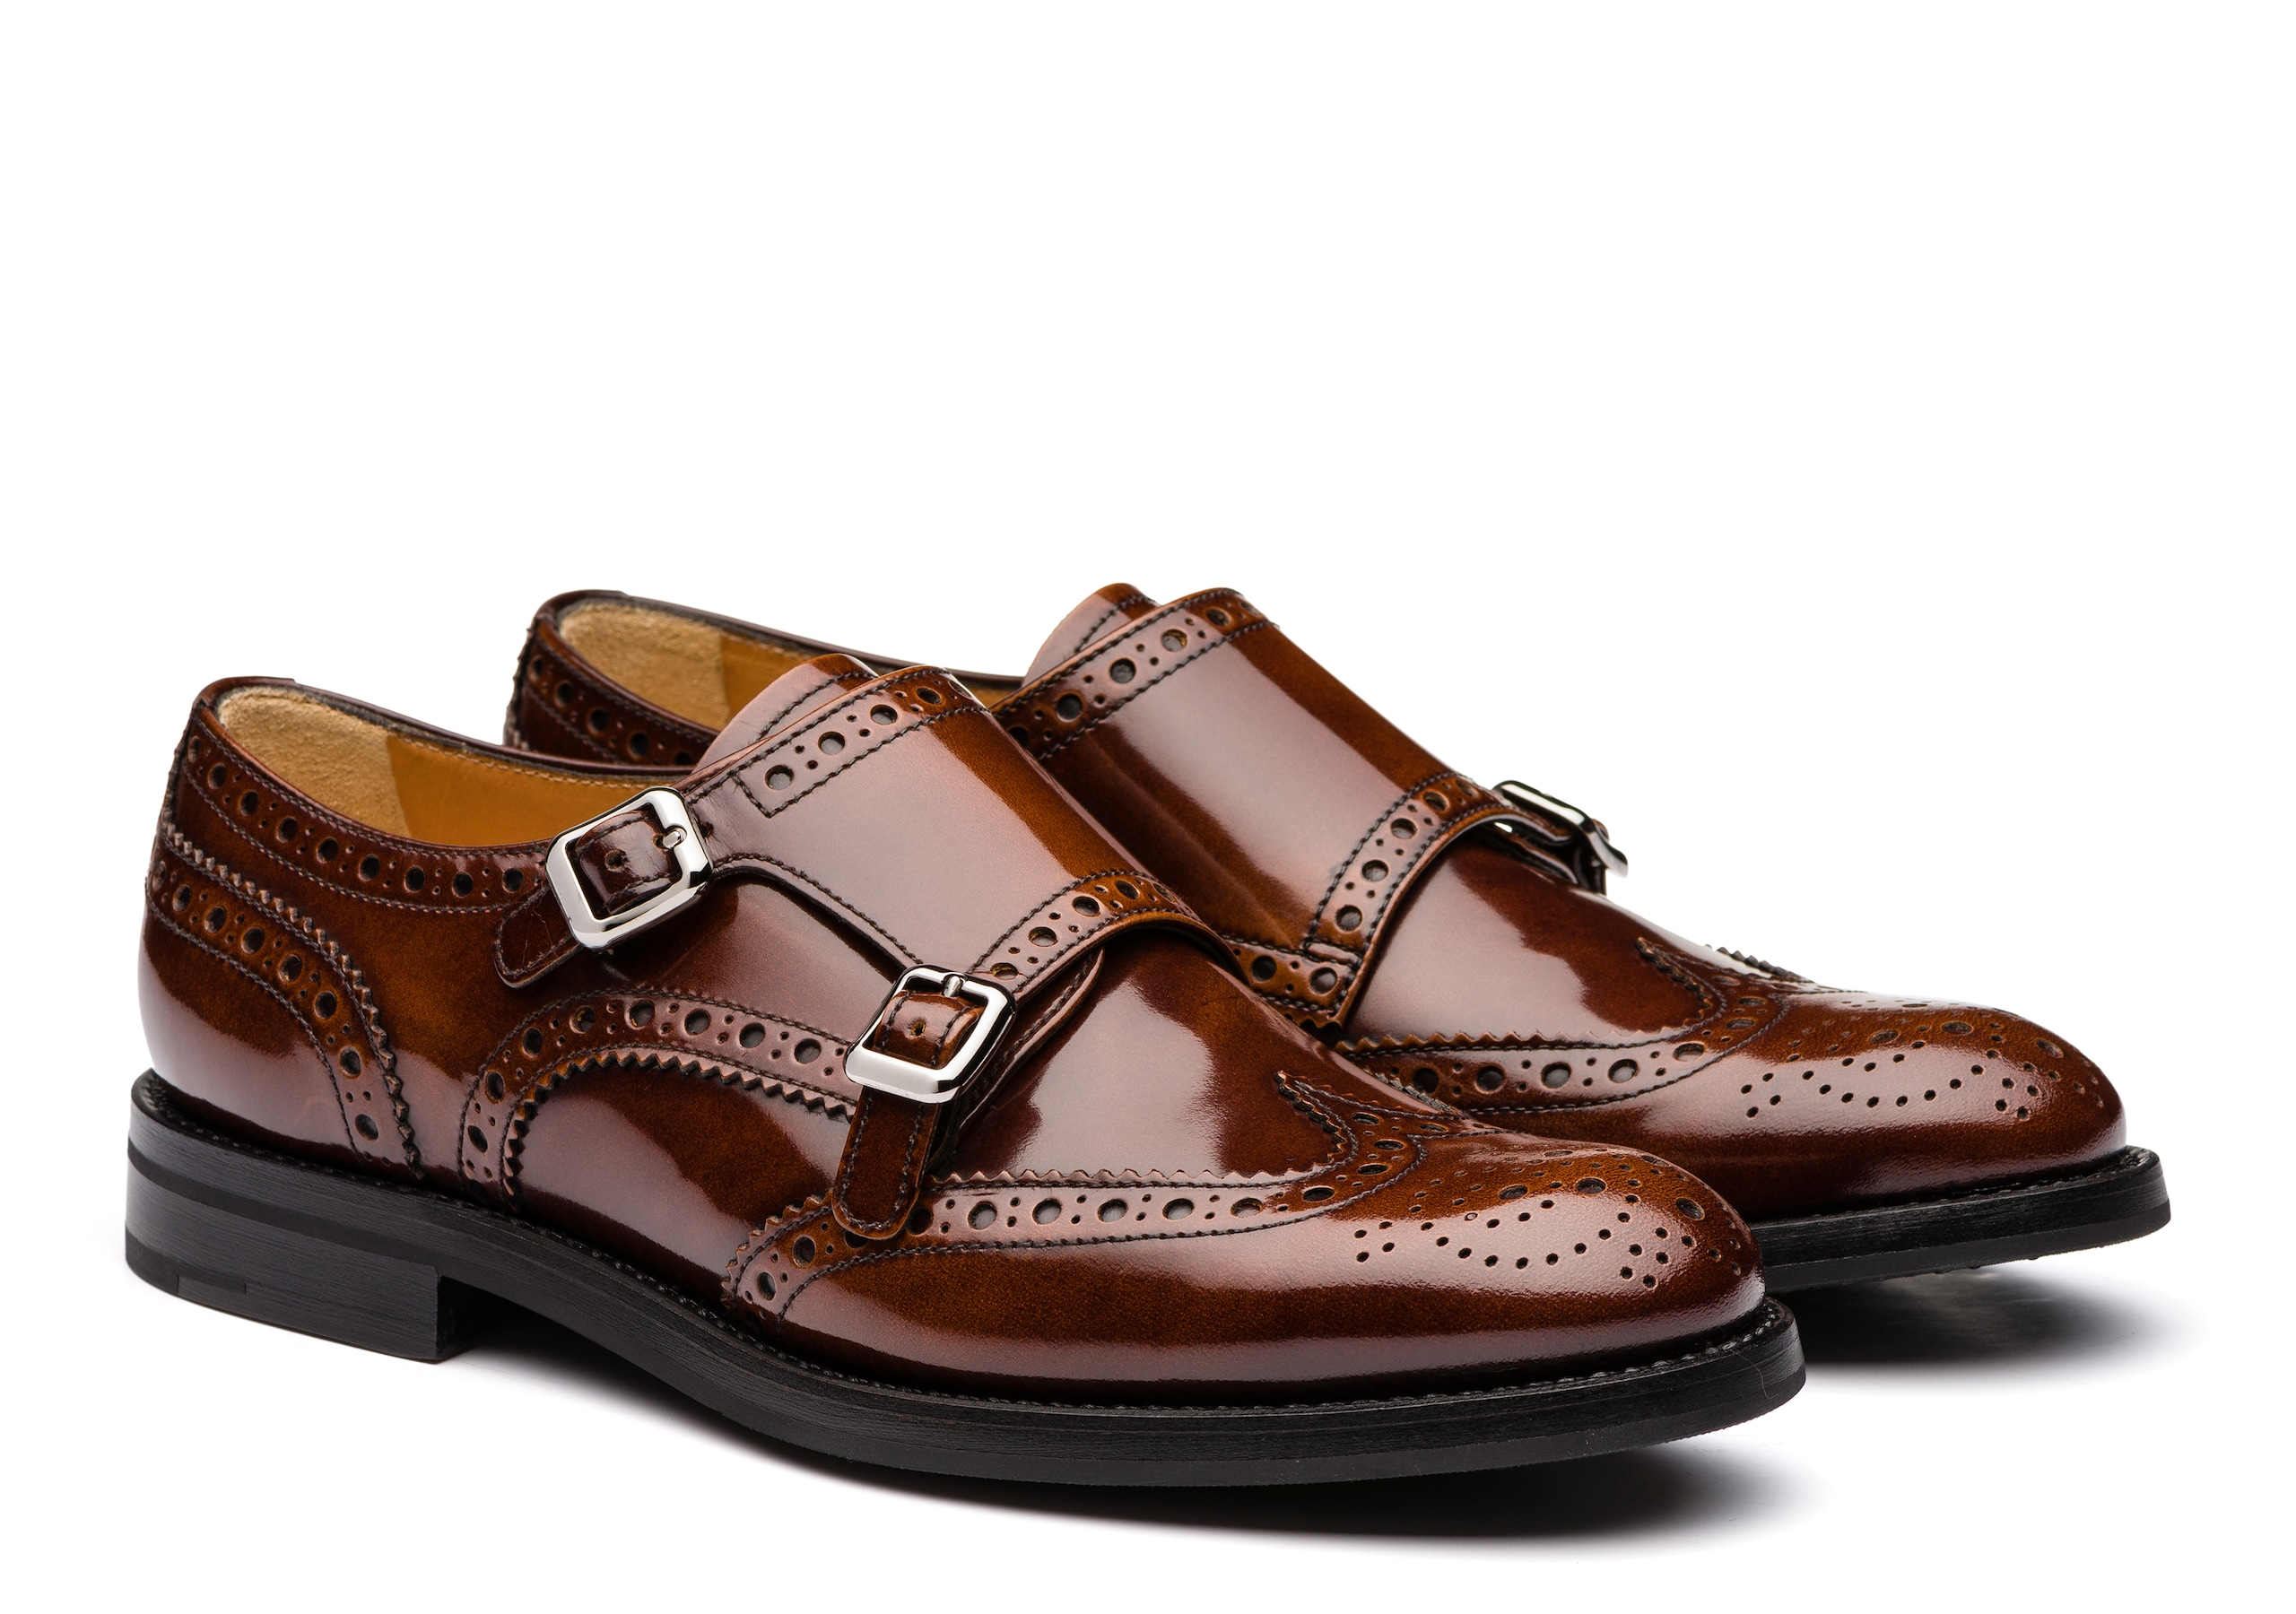 Lana r Church's Polished Fumè Monk Brogue Brown